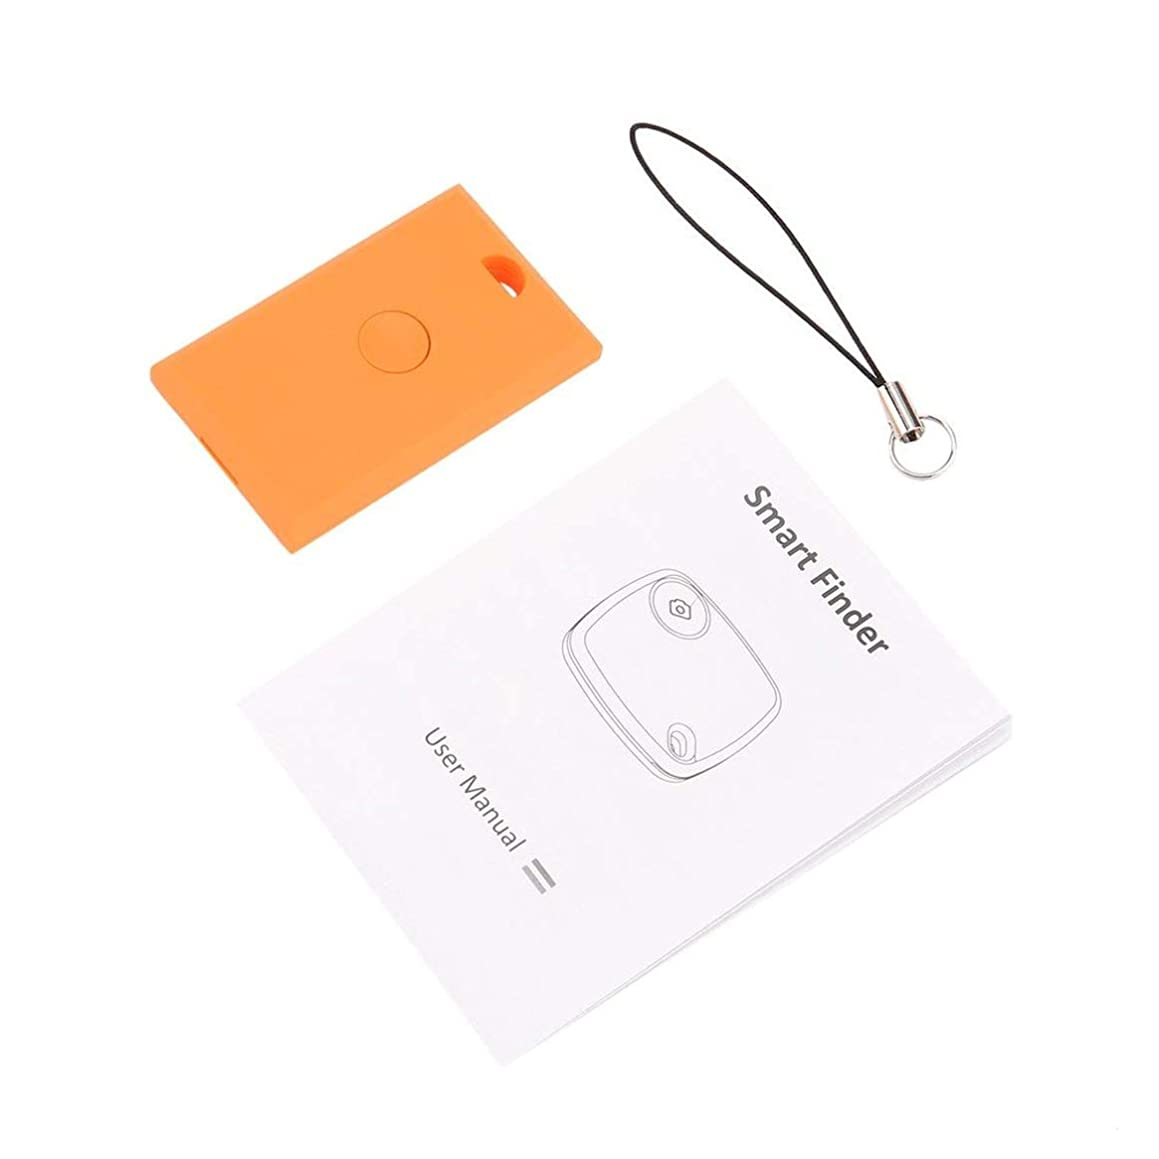 Bluetooth Smart Finder Locator Tracker Alarm Wireless Anti-Lost Sensor Remote Selfie Shutter for Kids Wallet Keys Phone y54879621097